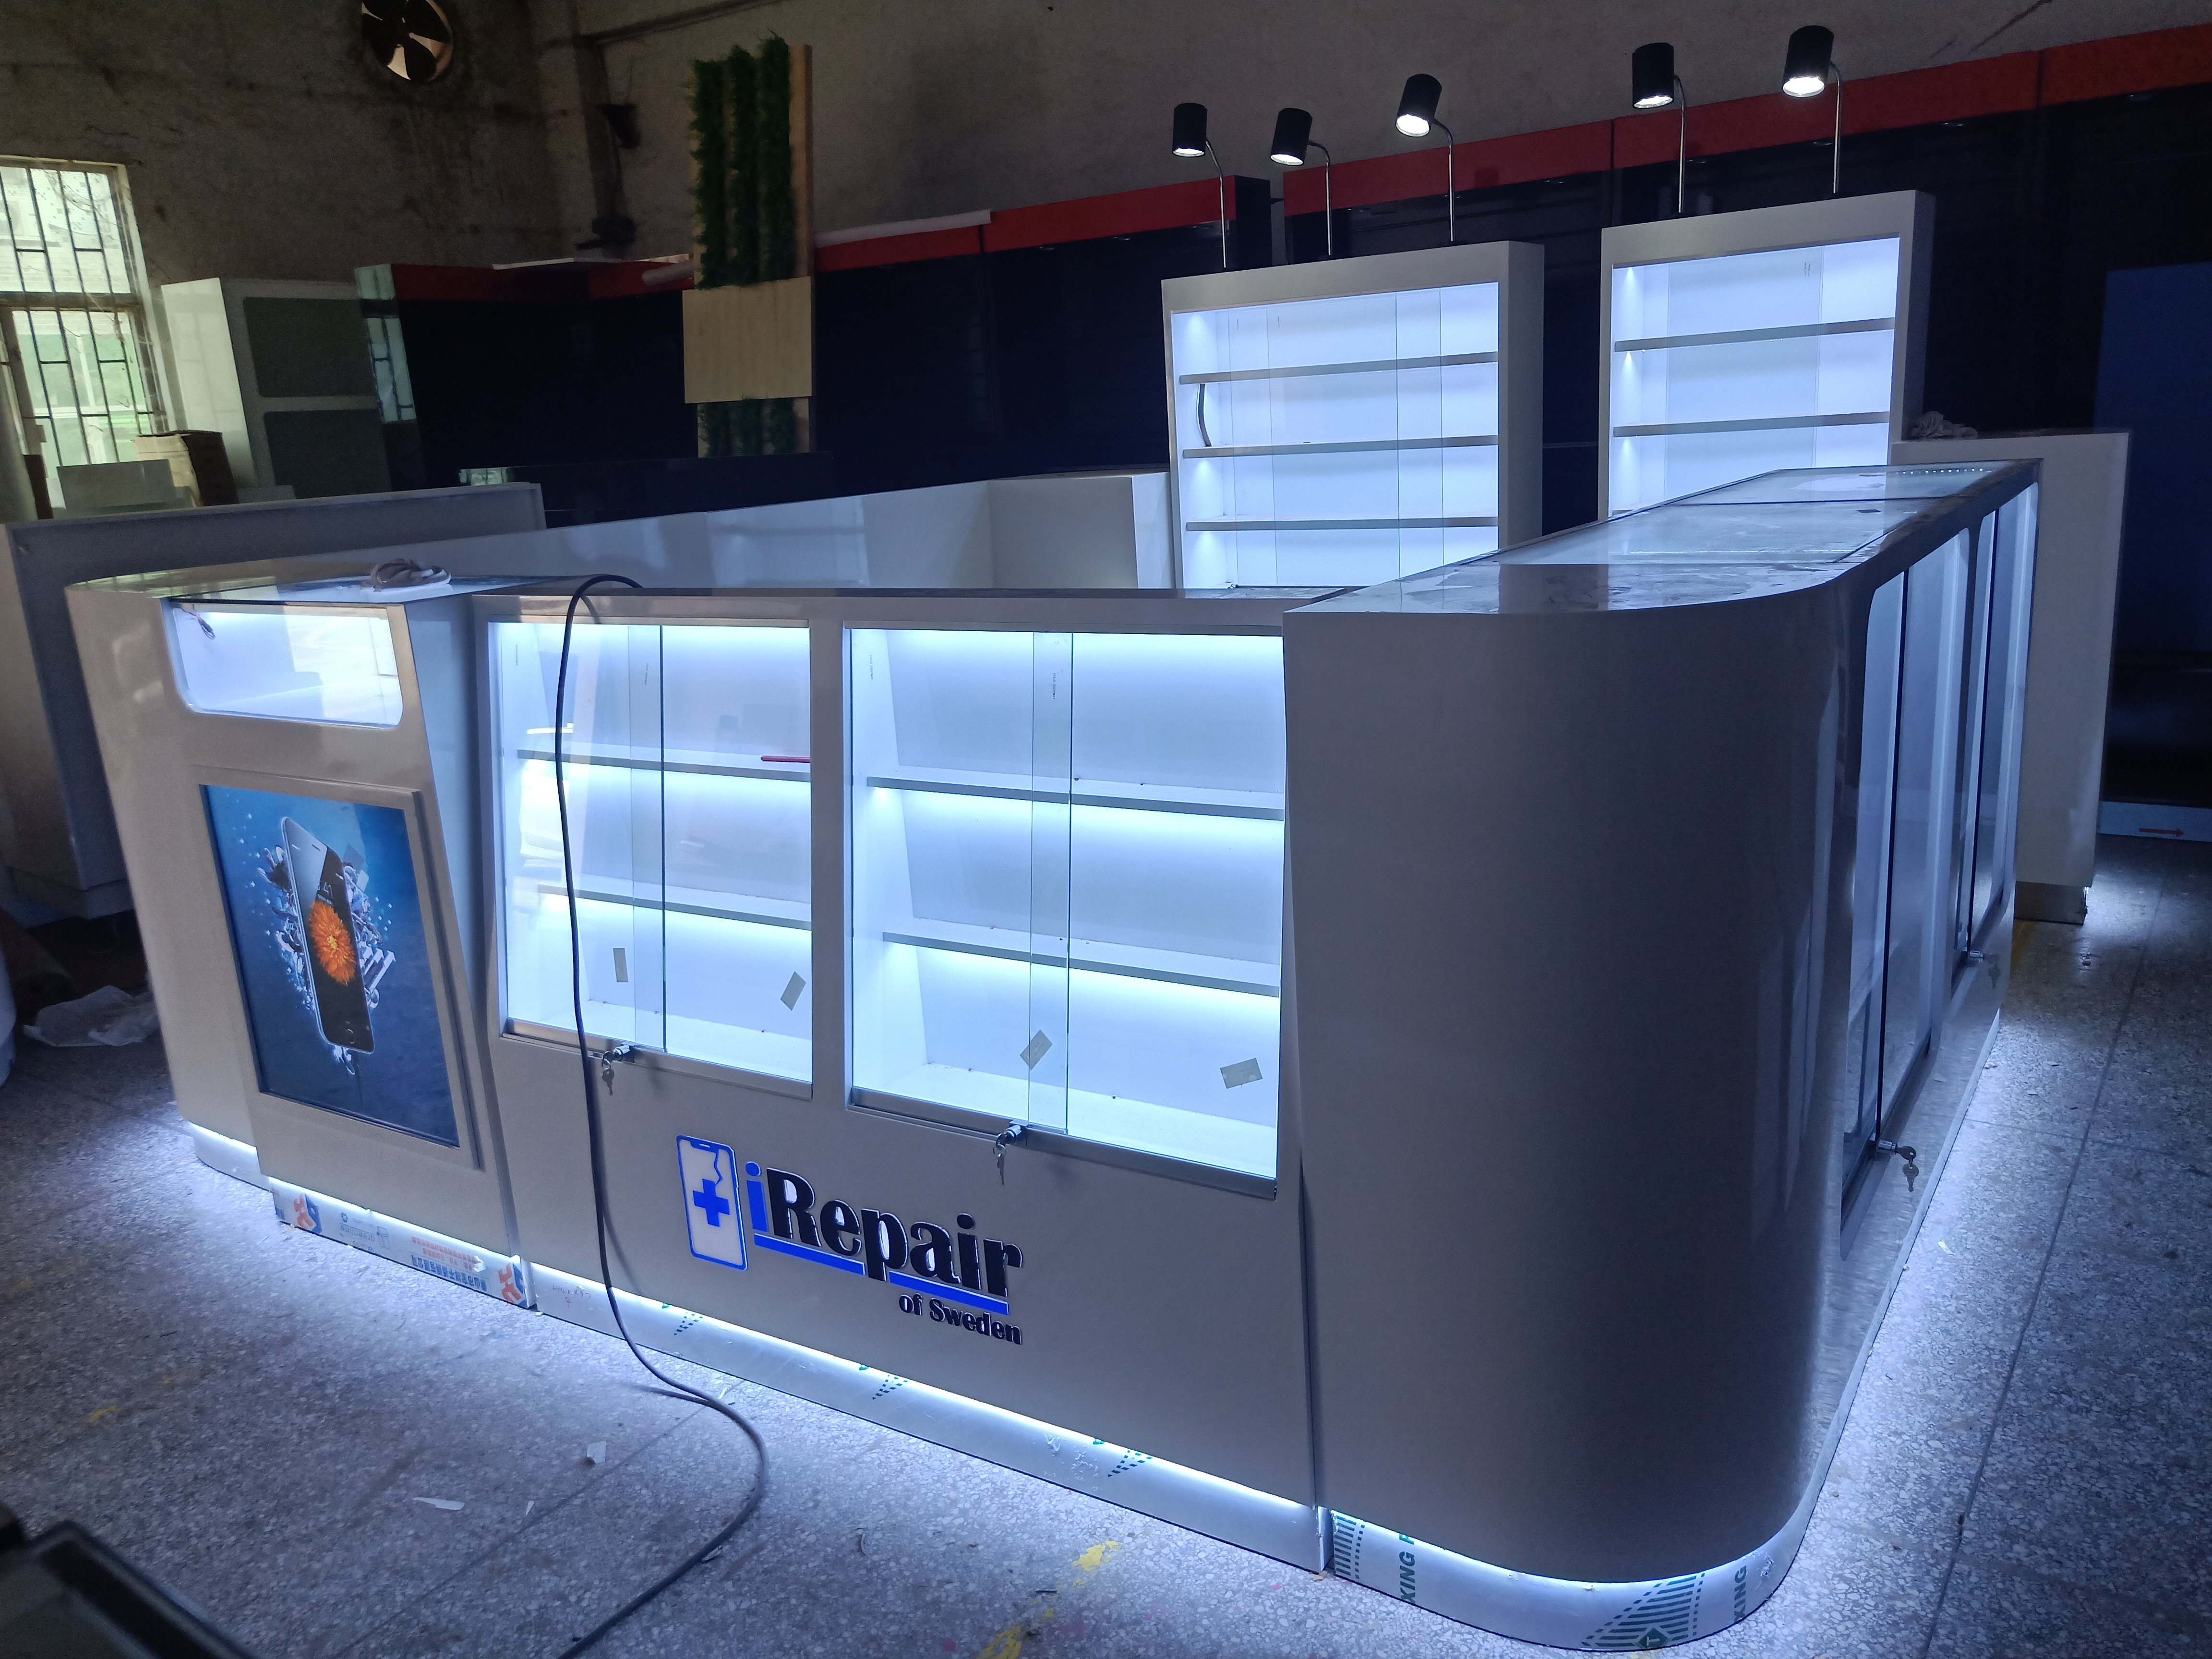 The production picture of the mobile phone accessories kiosk